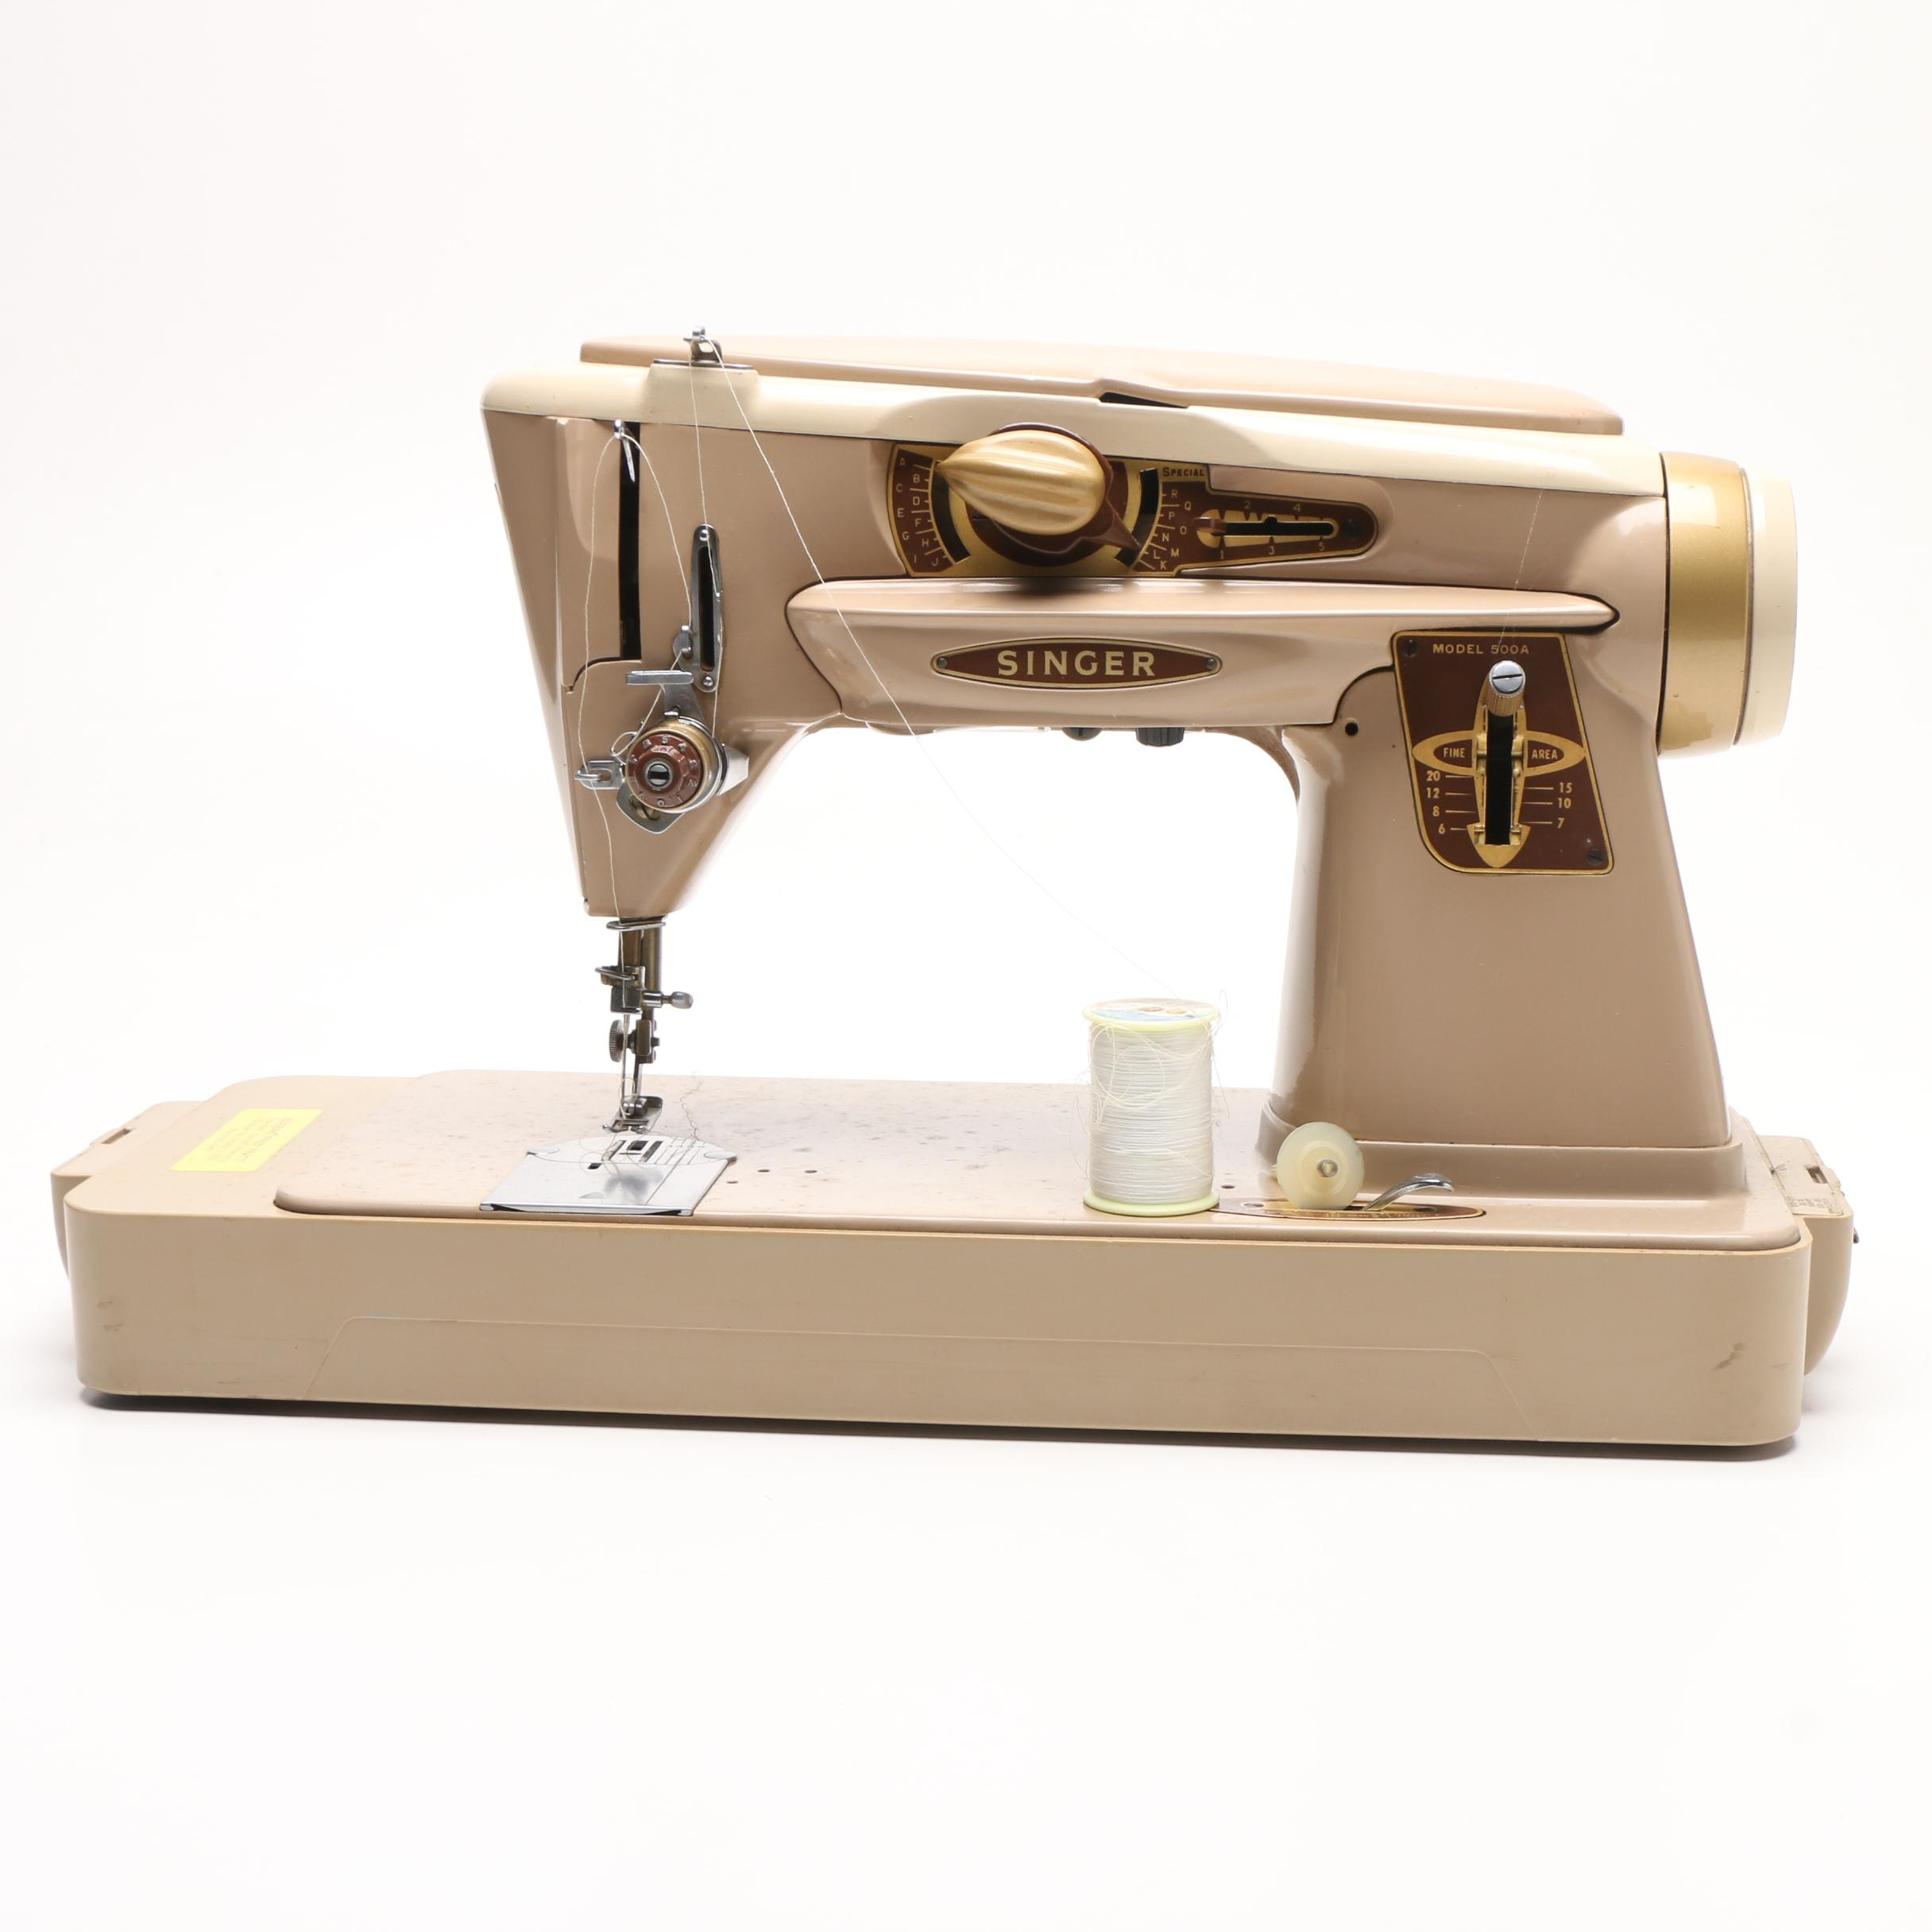 Vintage Portable Singer Sewing Machine 500A with Carrying Case